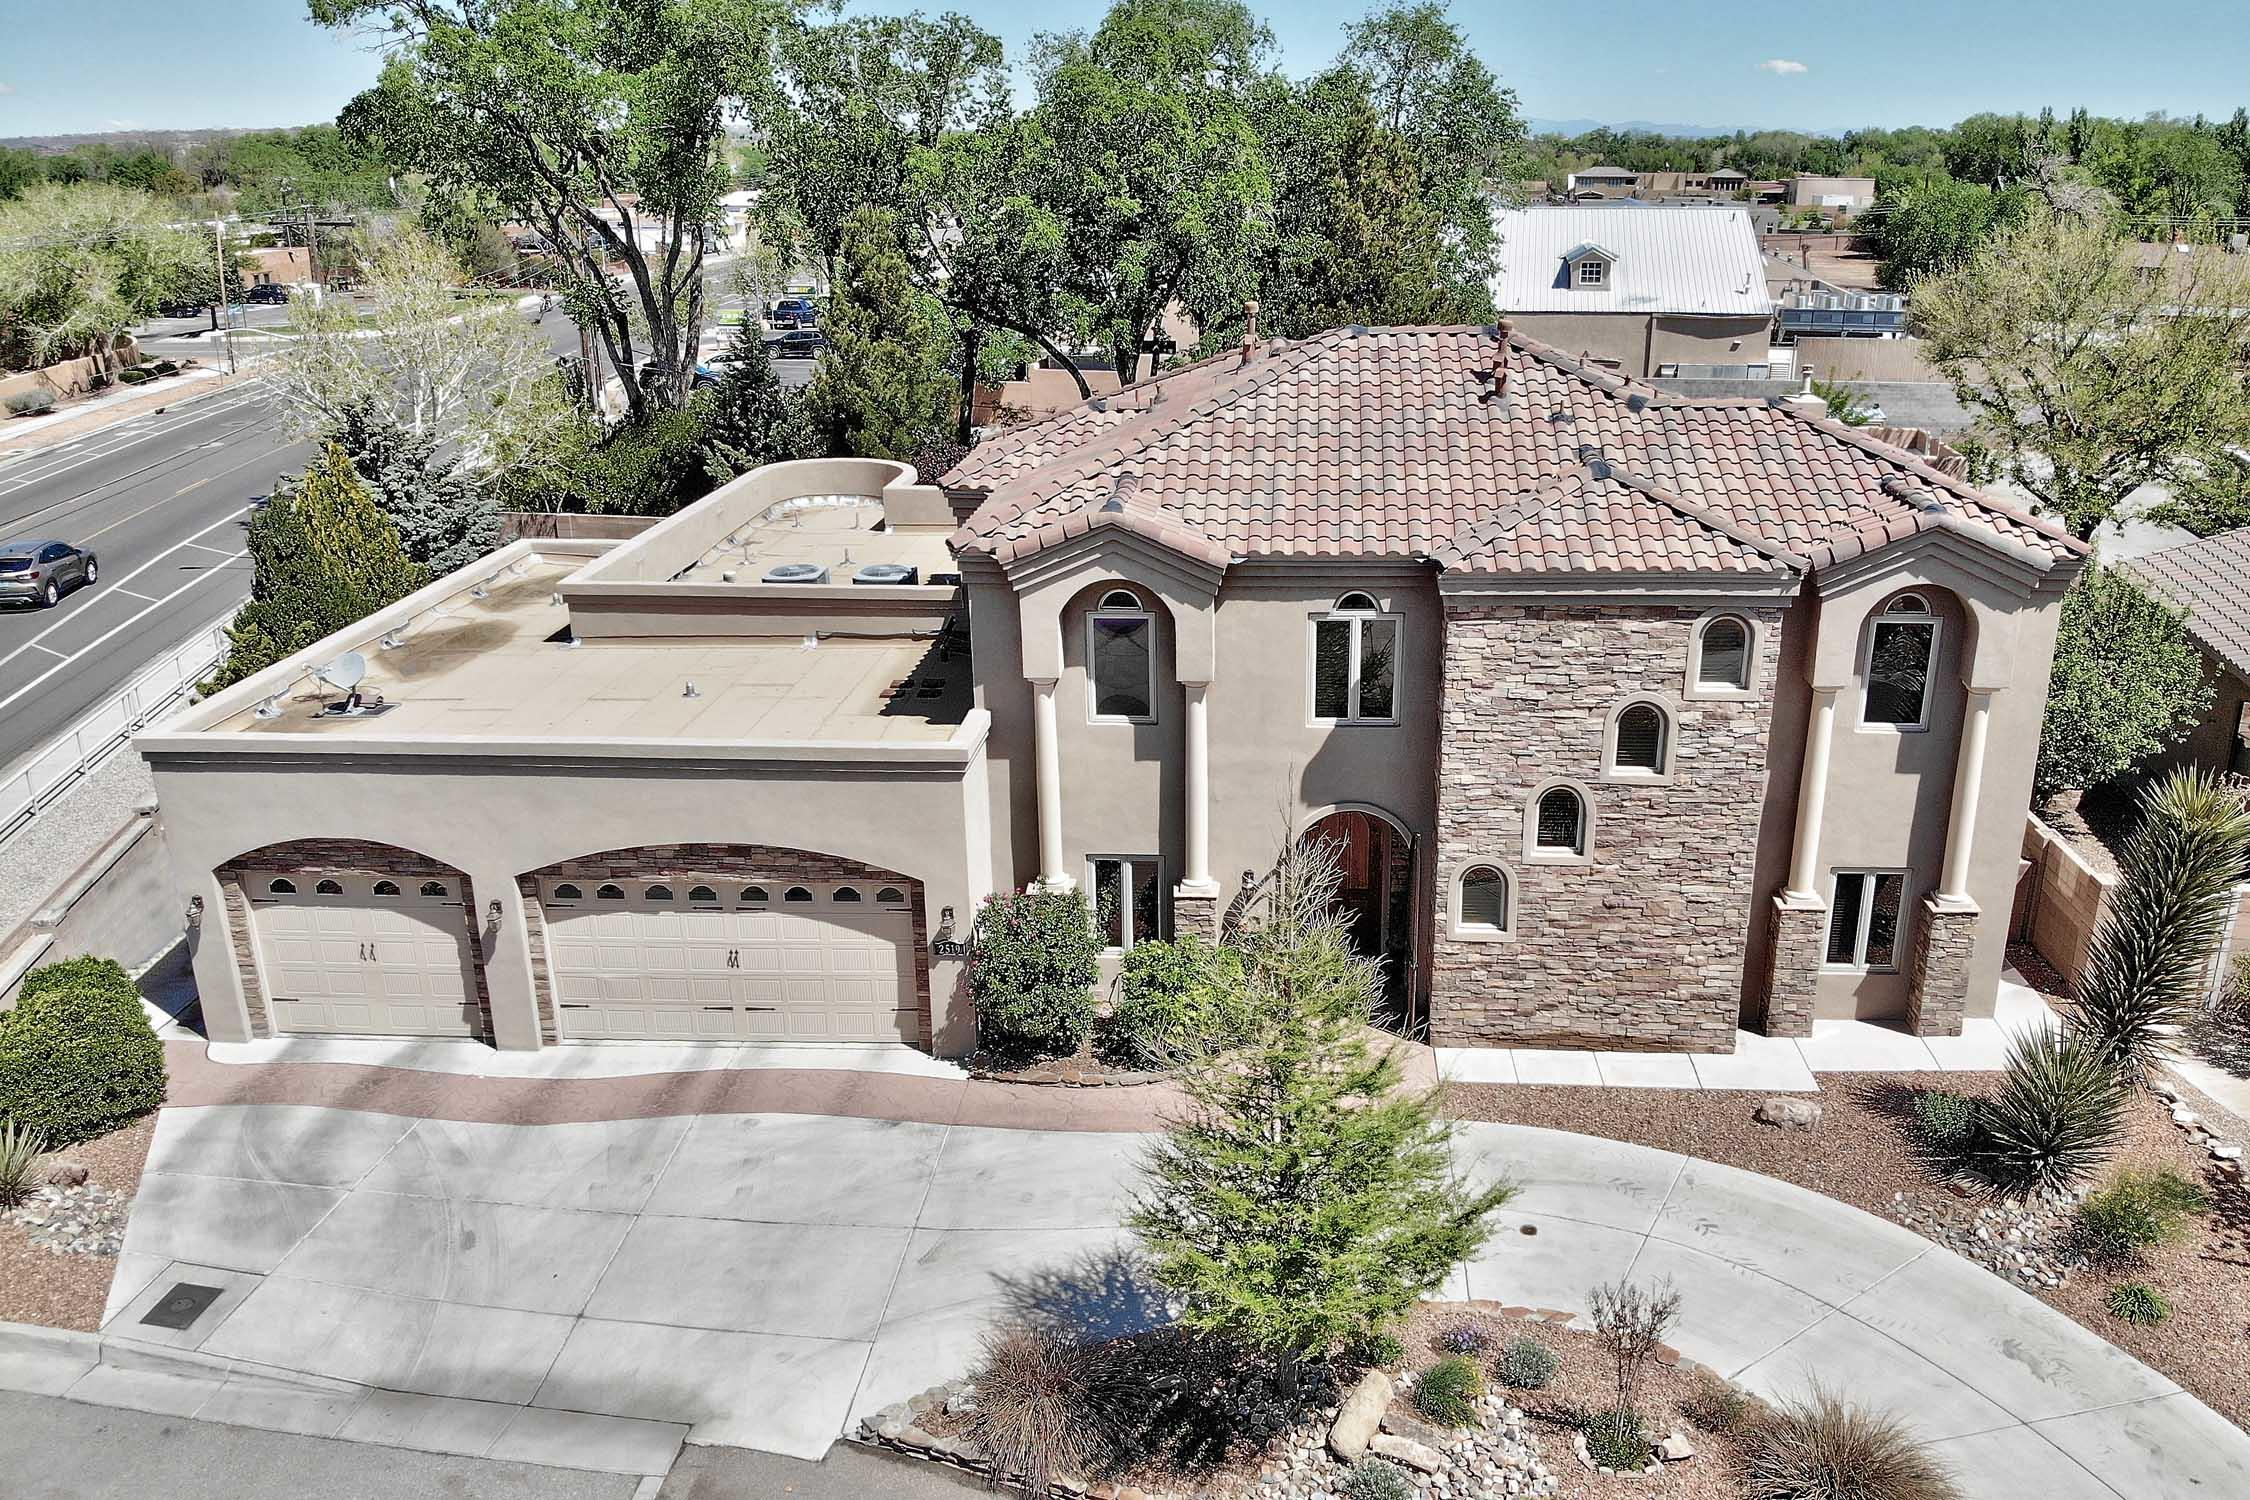 Beautiful, custom-built Tuscan style home in a private Cul de Sac neighborhood in the North Valley. This home has a wonderful rustic design aesthetic and features incredible details throughout the home, including travertine tile flooring, an open floor plan, tons of natural light and a gas fireplace in the living room. The fully-equipped chef's kitchen features alder cabinets, granite countertops, an island with room for seating and commercial KitchenAid Stainless Steel appliances, including double gas ranges and pot filler. The spacious butler's pantry and laundry room provides plenty of useful storage space. The wet bar is absolutely perfect for entertaining, and the formal dining room promises to bring plenty of elegance and class to all of your social gatherings. Natural light from sun